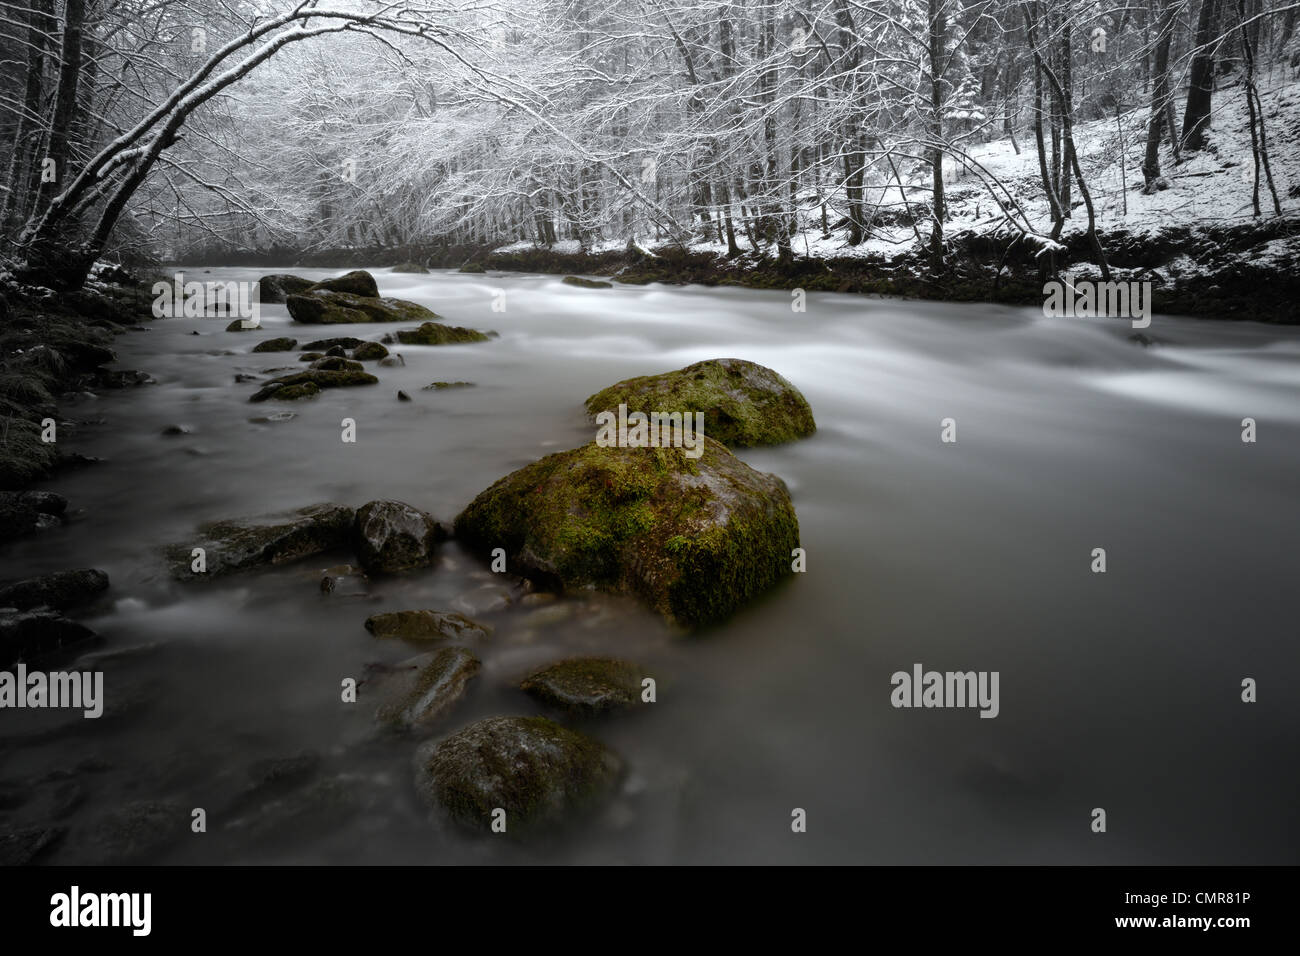 Mountain river floating through winterly forest. - Stock Image